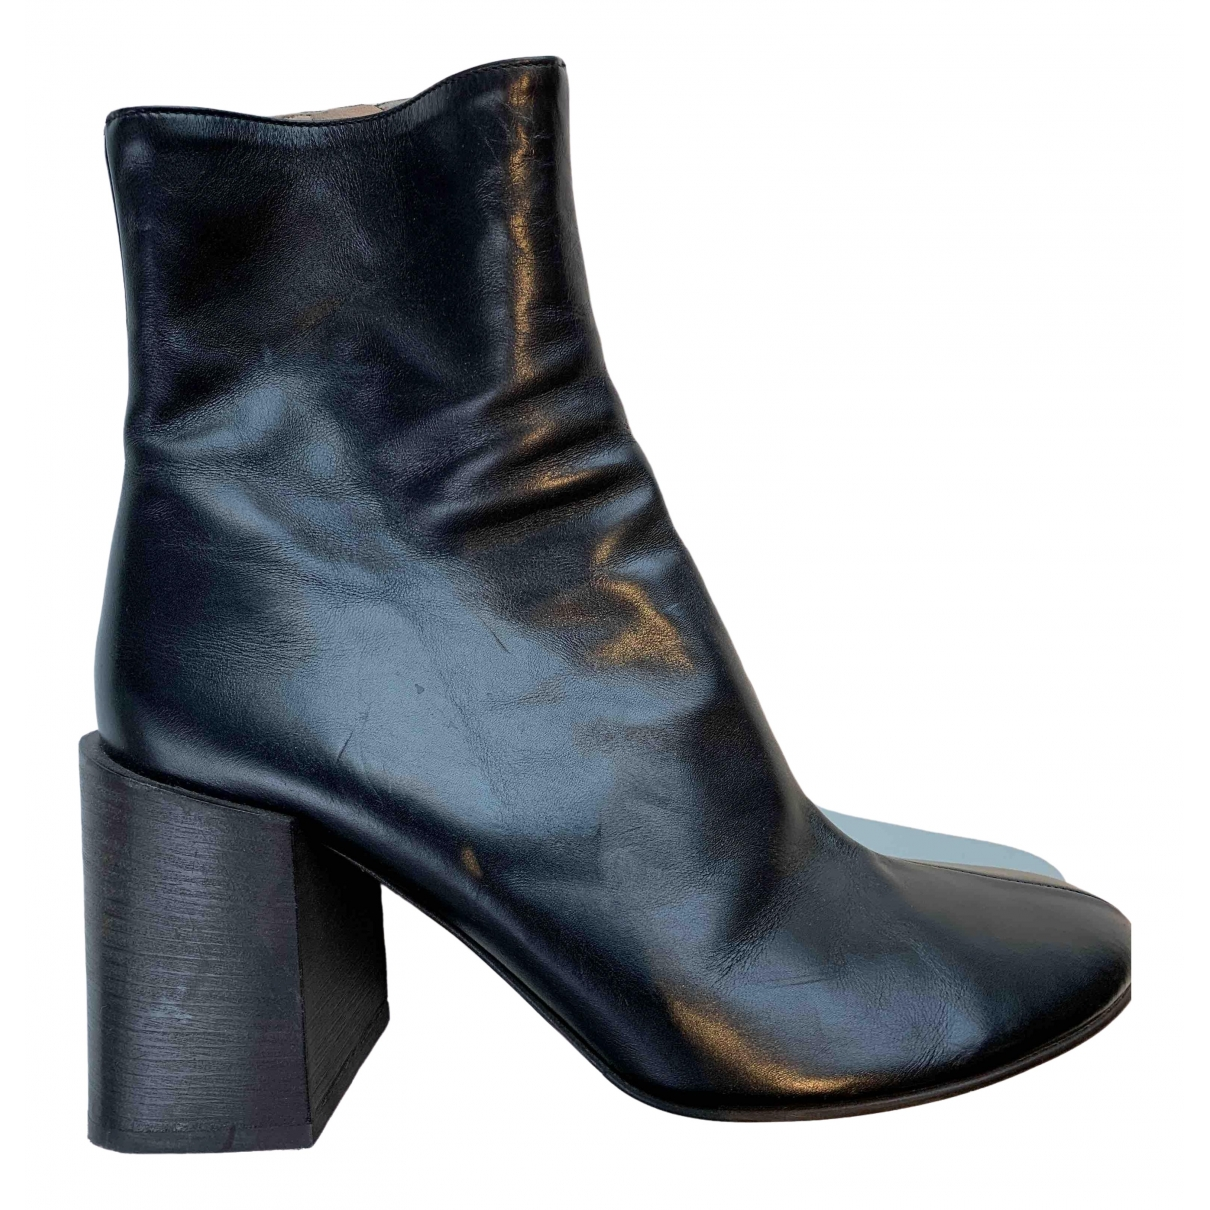 Acne Studios \N Black Leather Ankle boots for Women 39 EU